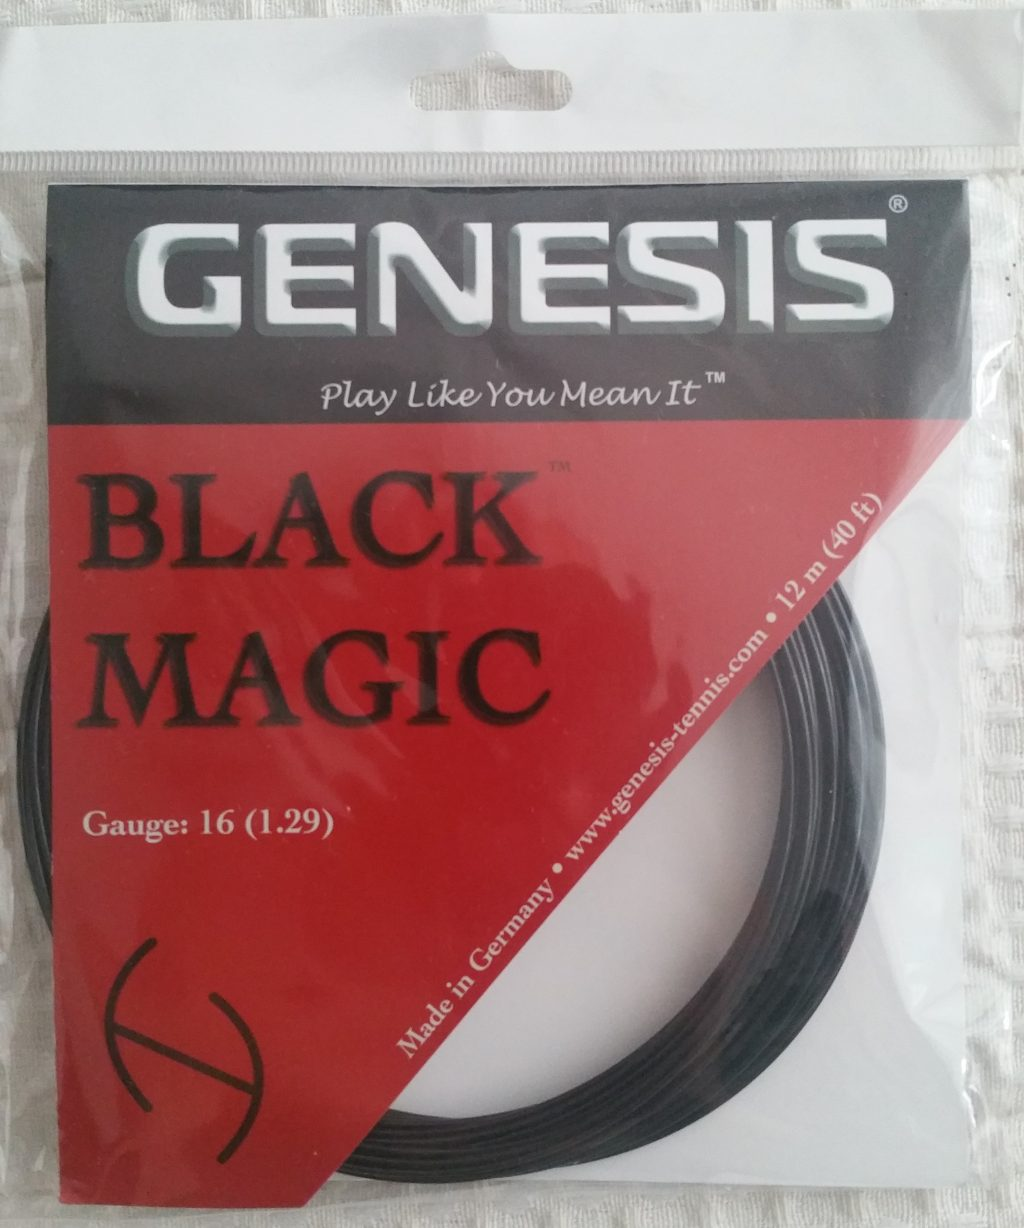 [Vends] Garniture Genesis Black Magic 1.29